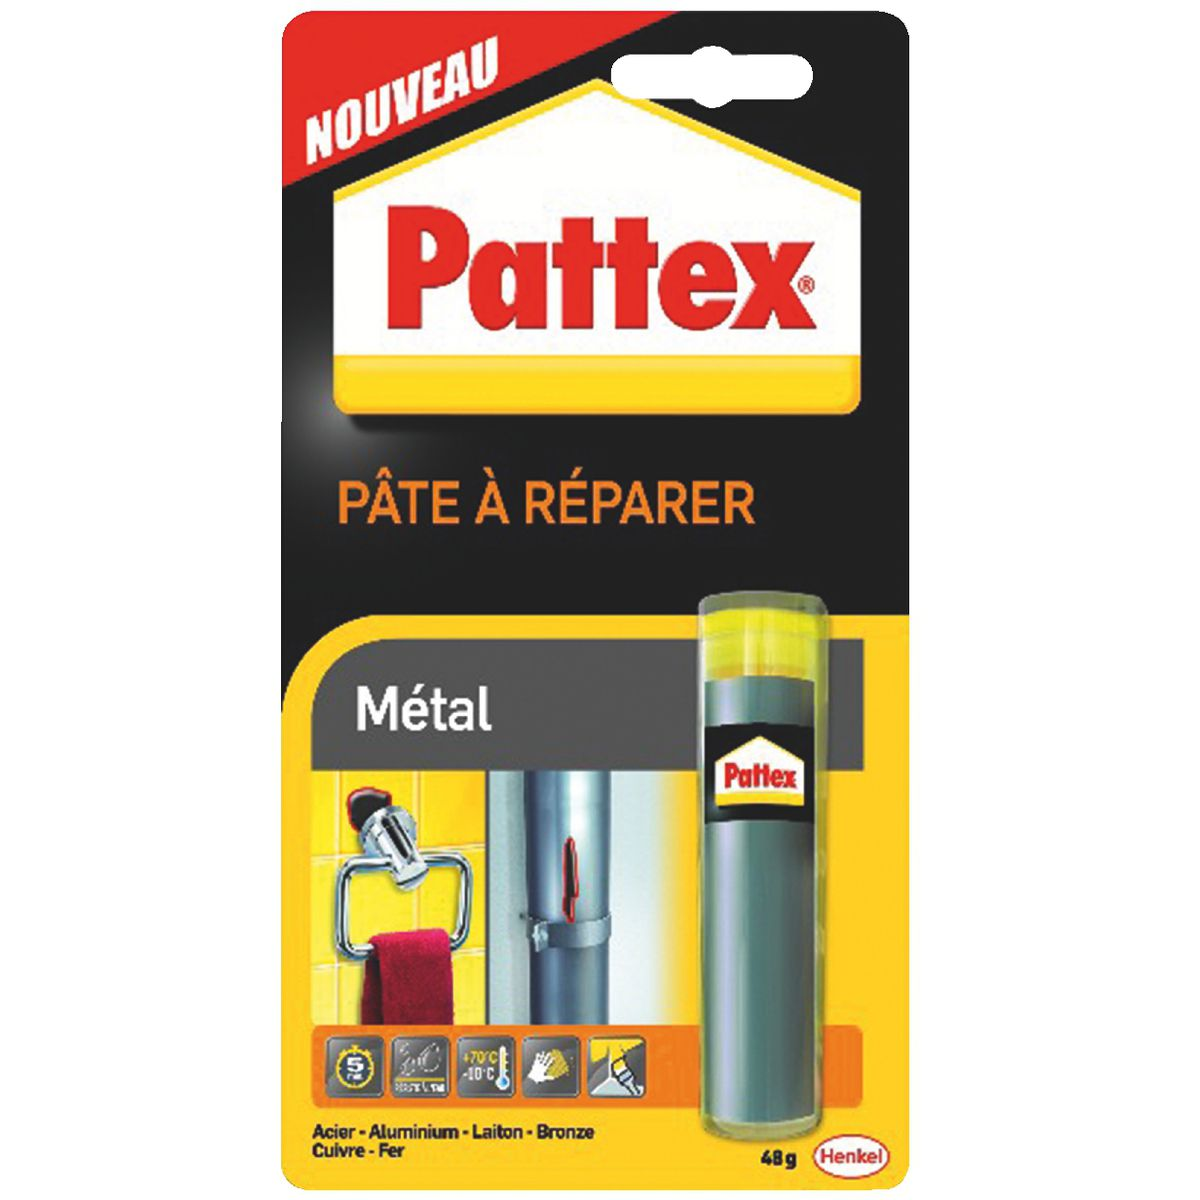 Repair Express métal Pattex